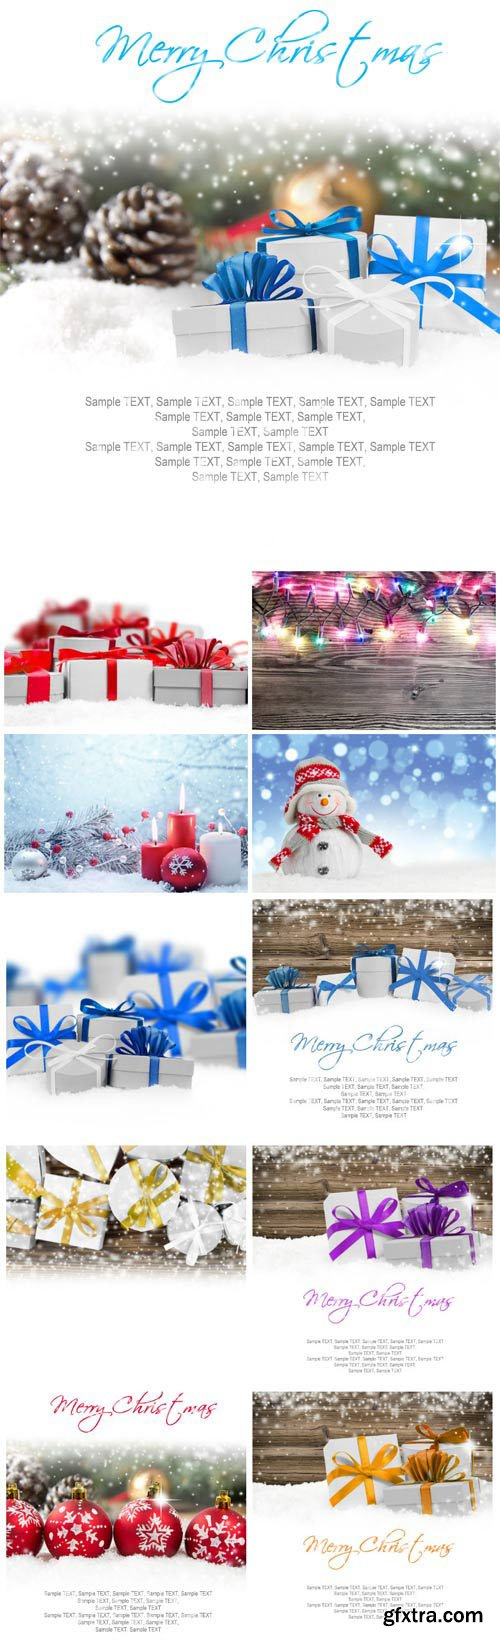 New Year and Christmas stock photos №18